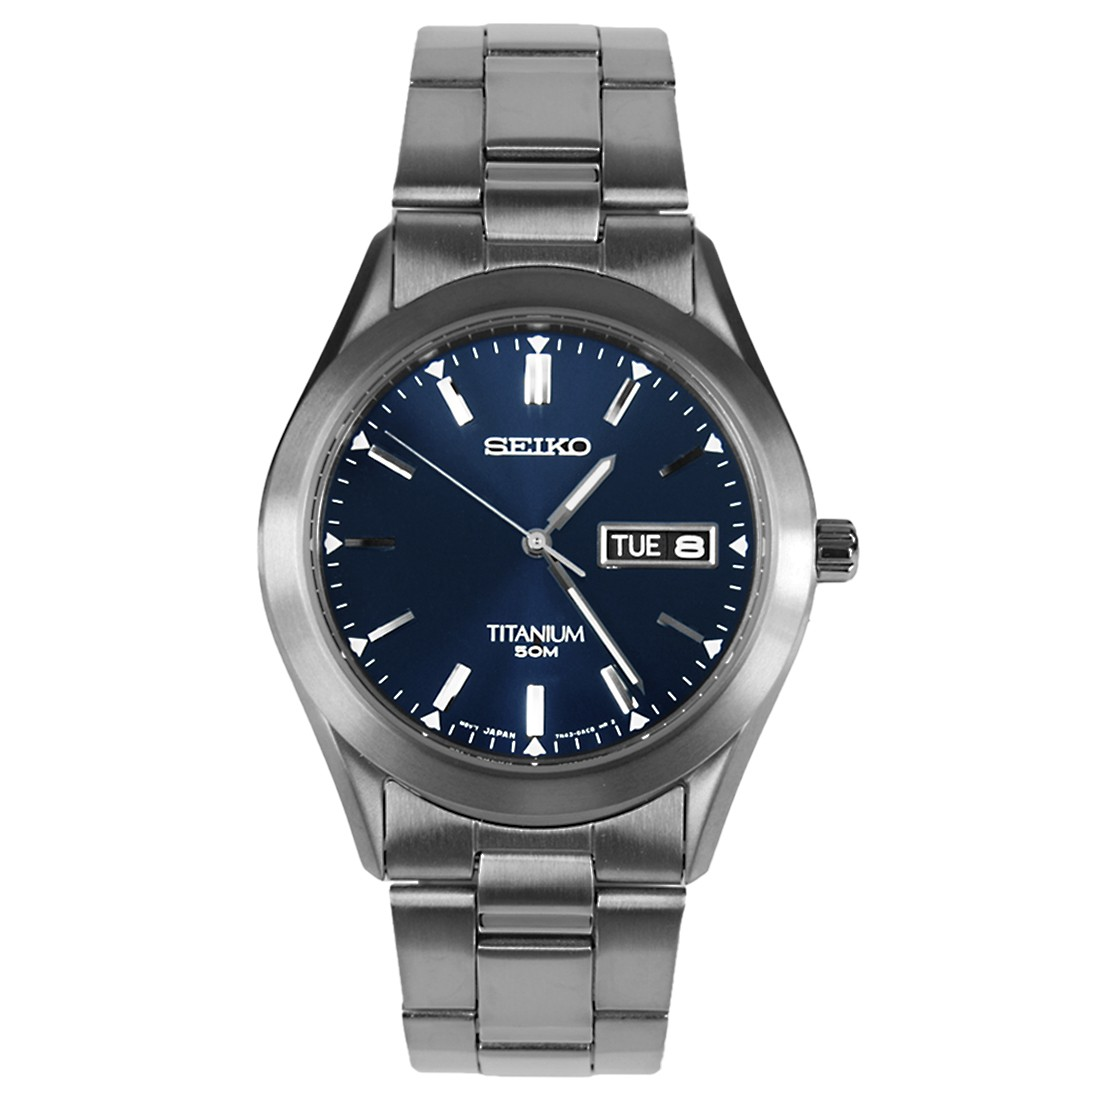 SEIKO Titamium Men's Watch รุ่น SGG601P1